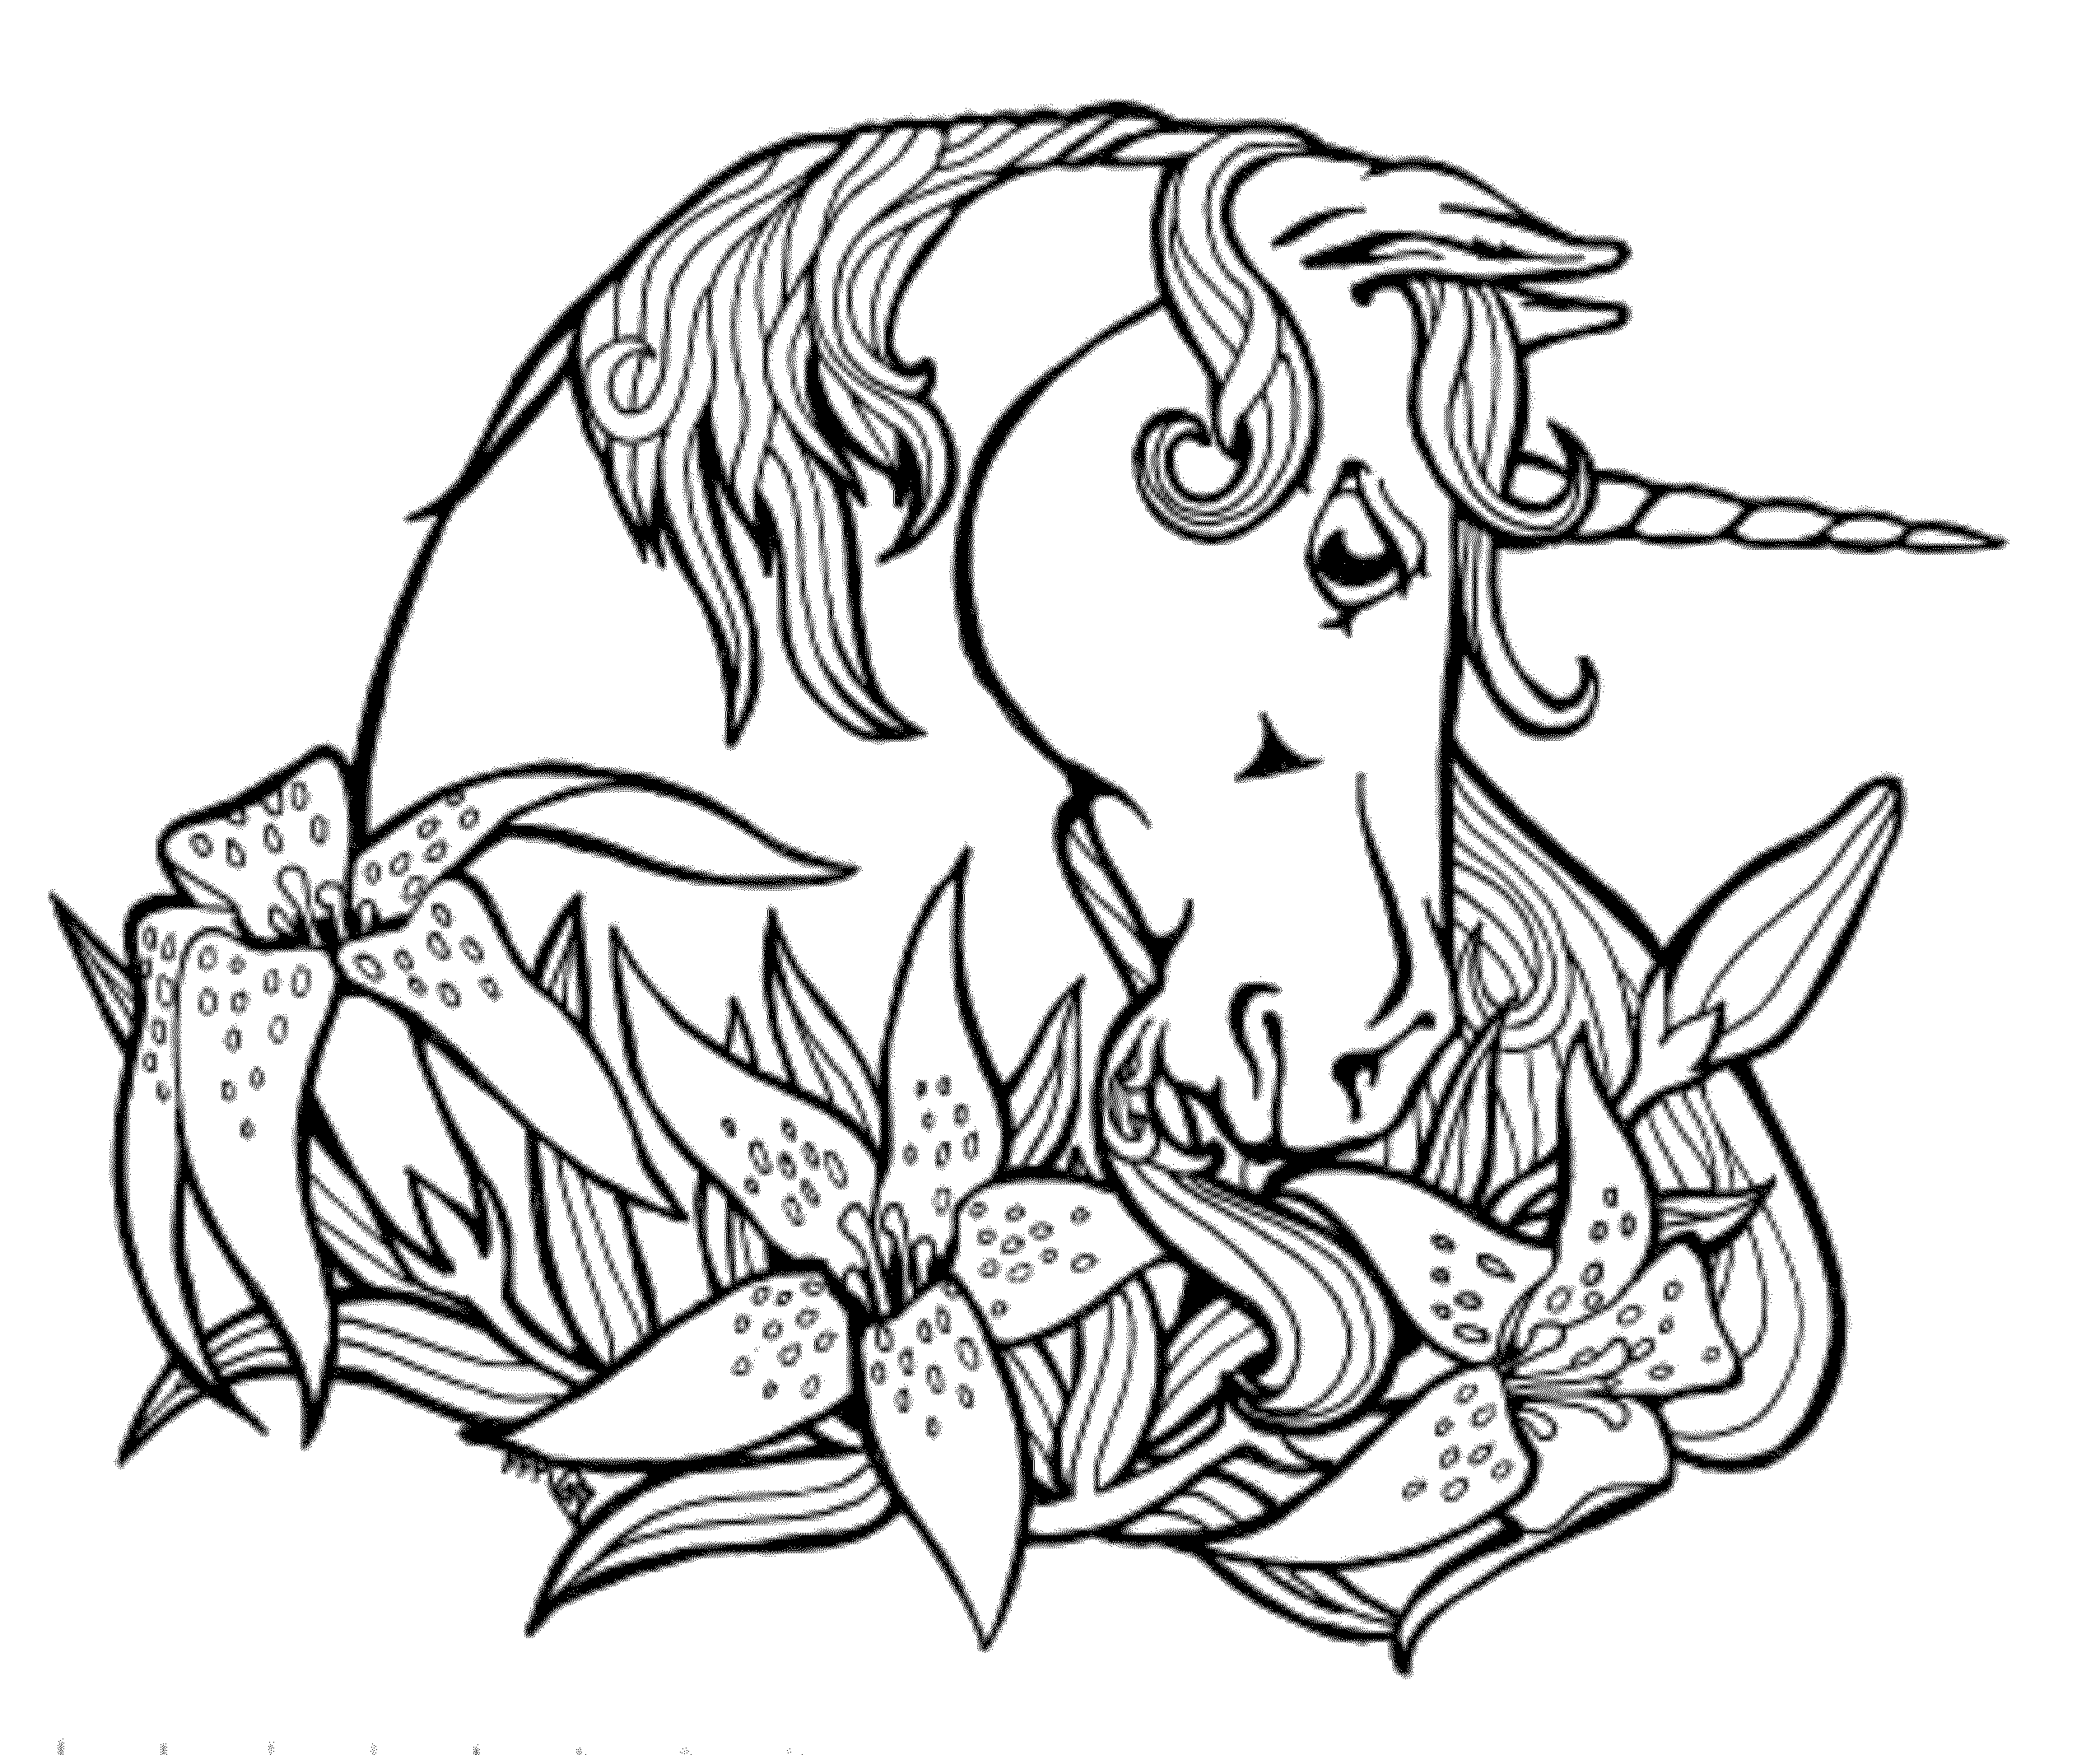 full size coloring pages free full size coloring pages at getcoloringscom free size pages coloring full